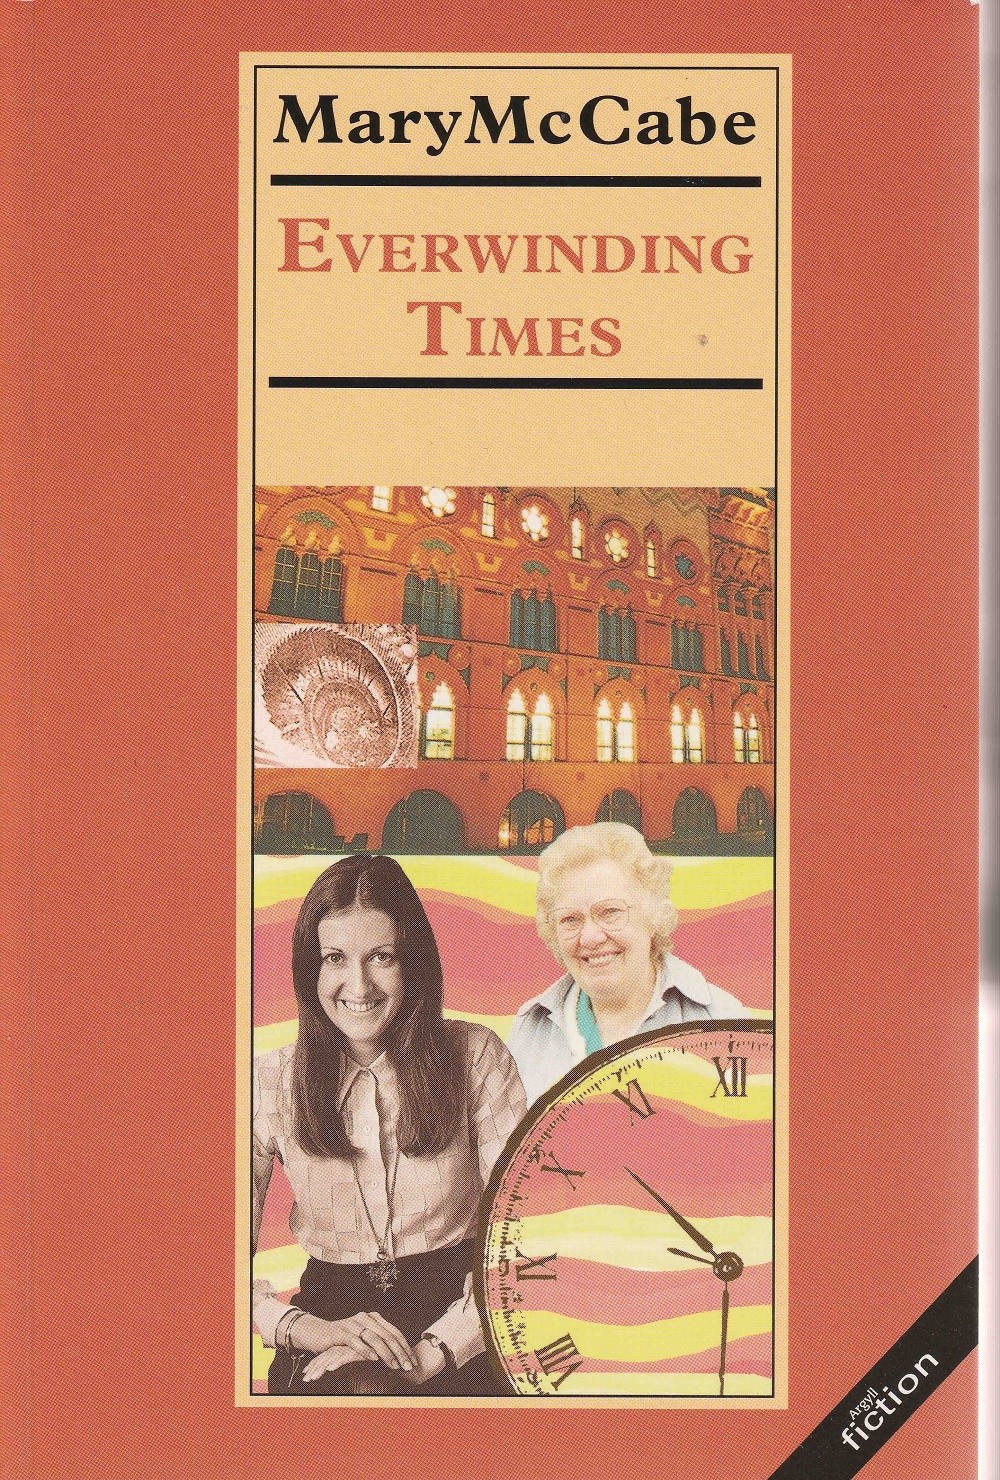 Everwinding Times by Mary McCabe